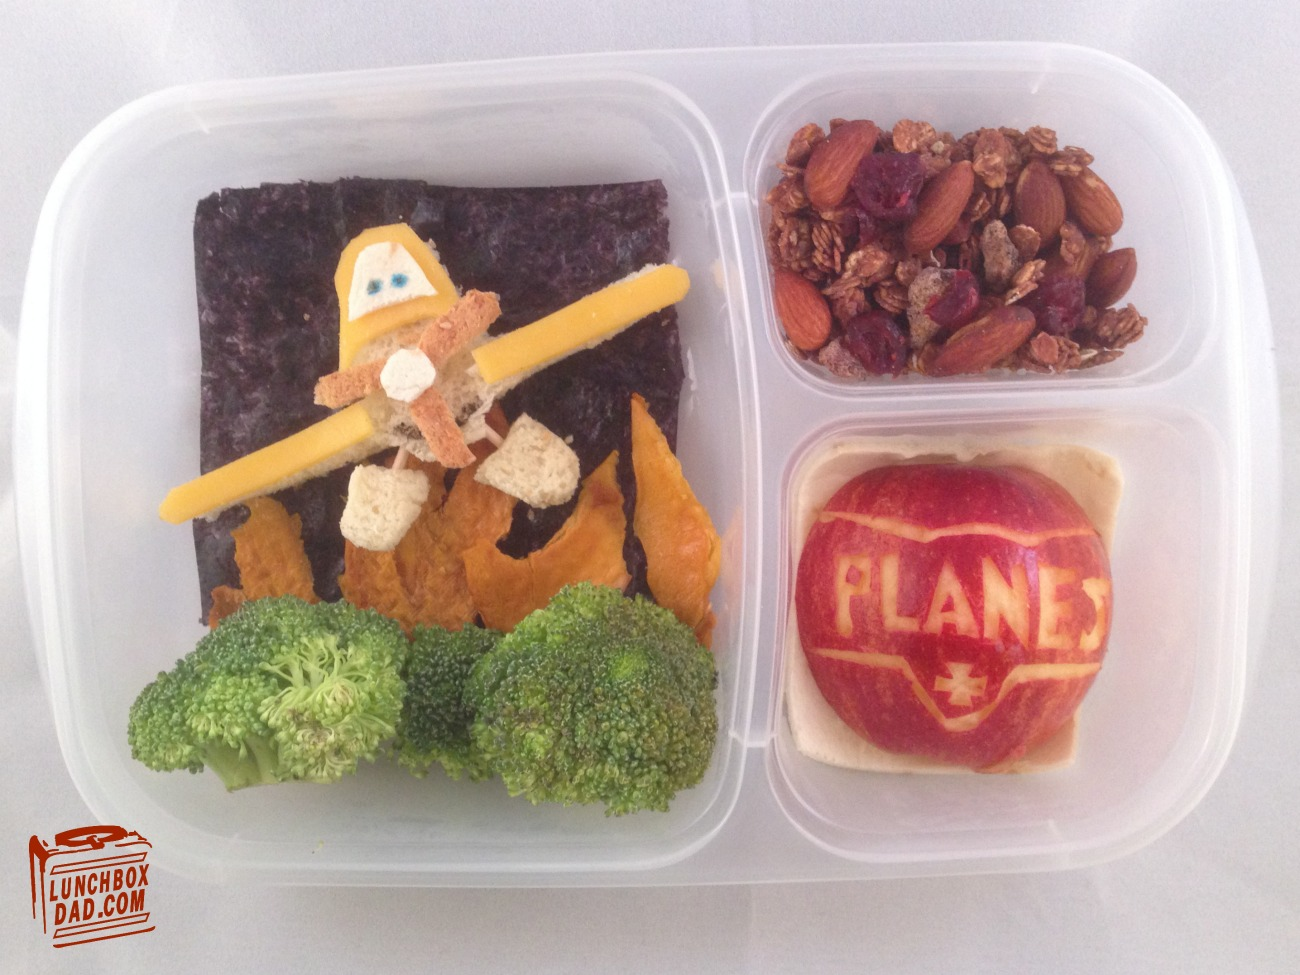 Disney Planes Fire and Rescue Lunch Recipe